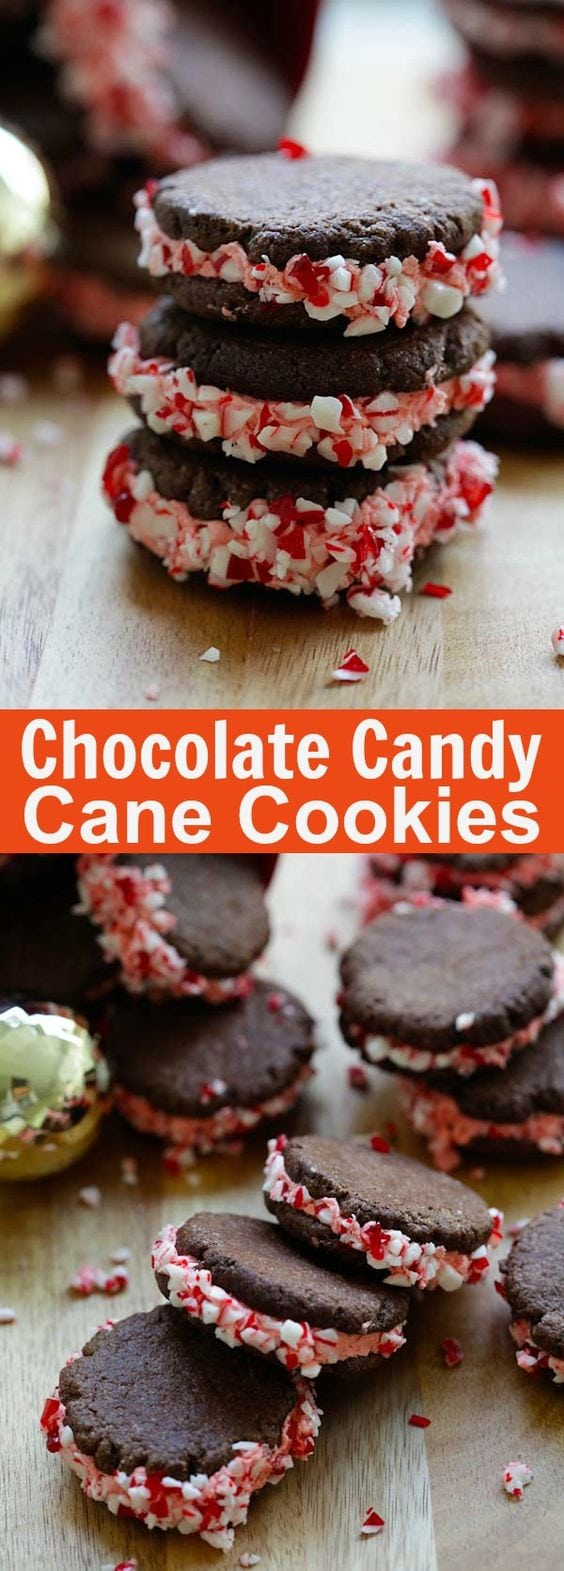 Chocolate Candy Cane Cookies – festive chocolate cookies with frosting and candy canes! The perfect cookie recipe for the holidays!   rasamalaysia.com